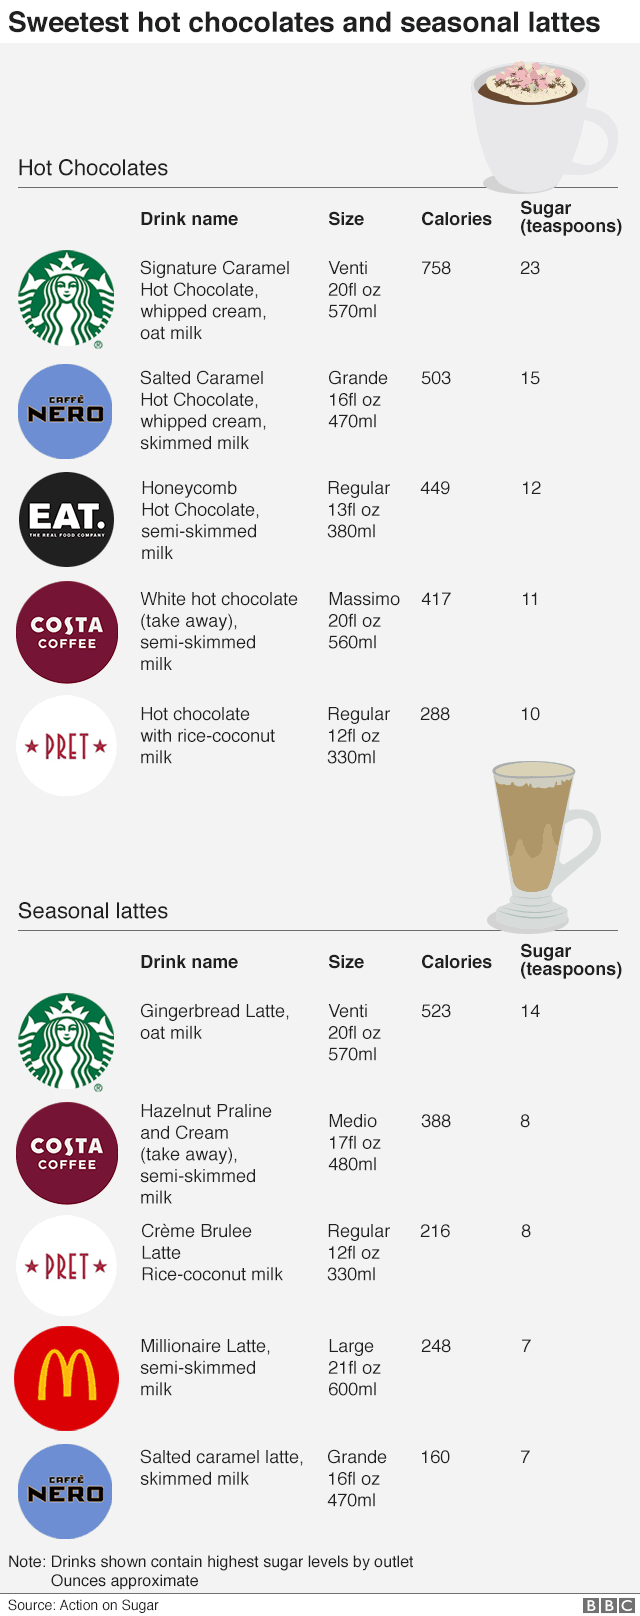 Infographic showing sweetest hot chocolates and seasonal lattes